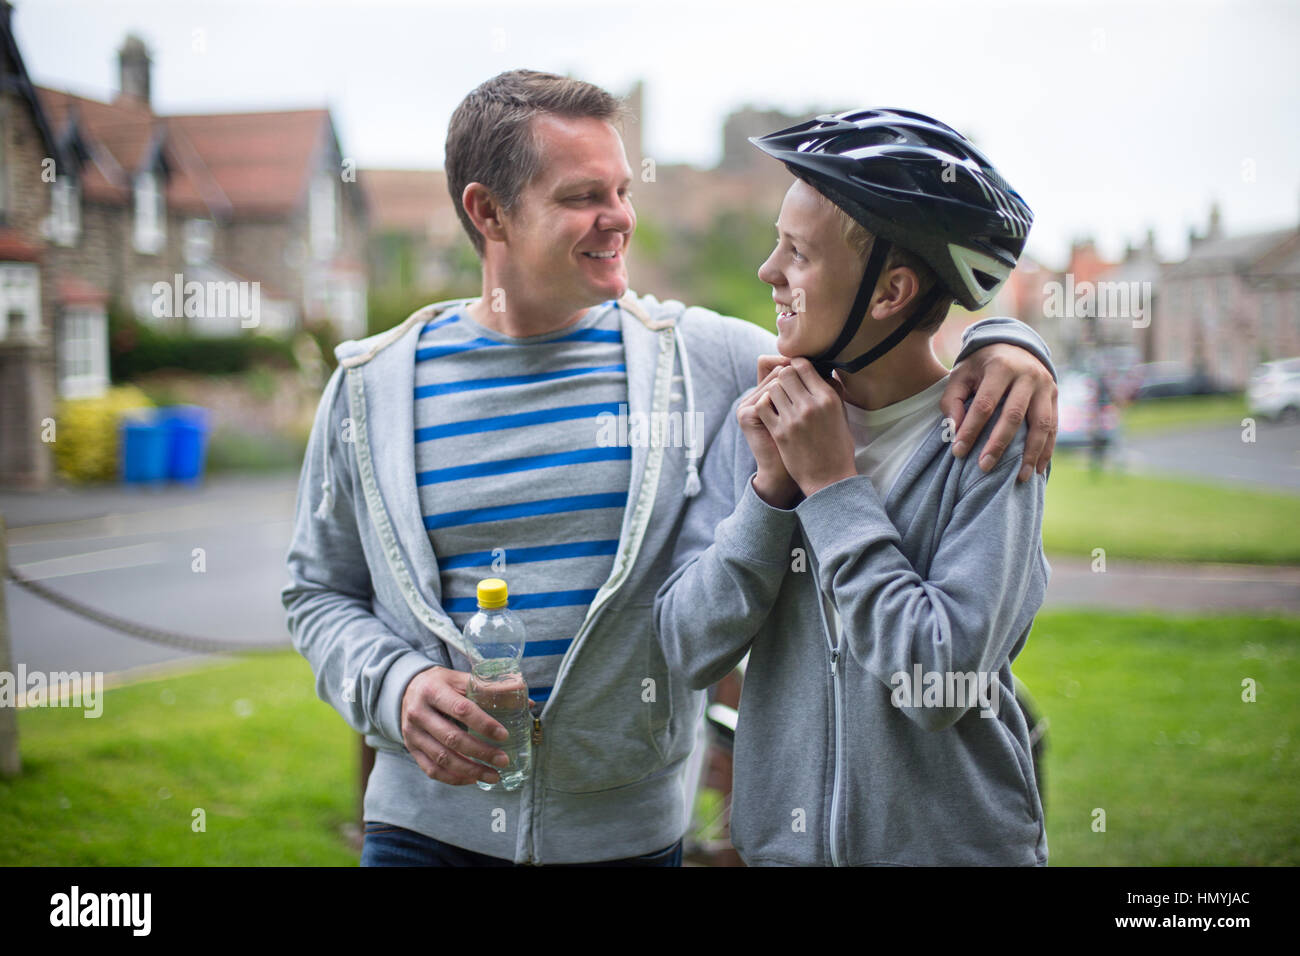 Father and Son getting ready for their bike ride. The father has his arm around his son and they are smiling at - Stock Image